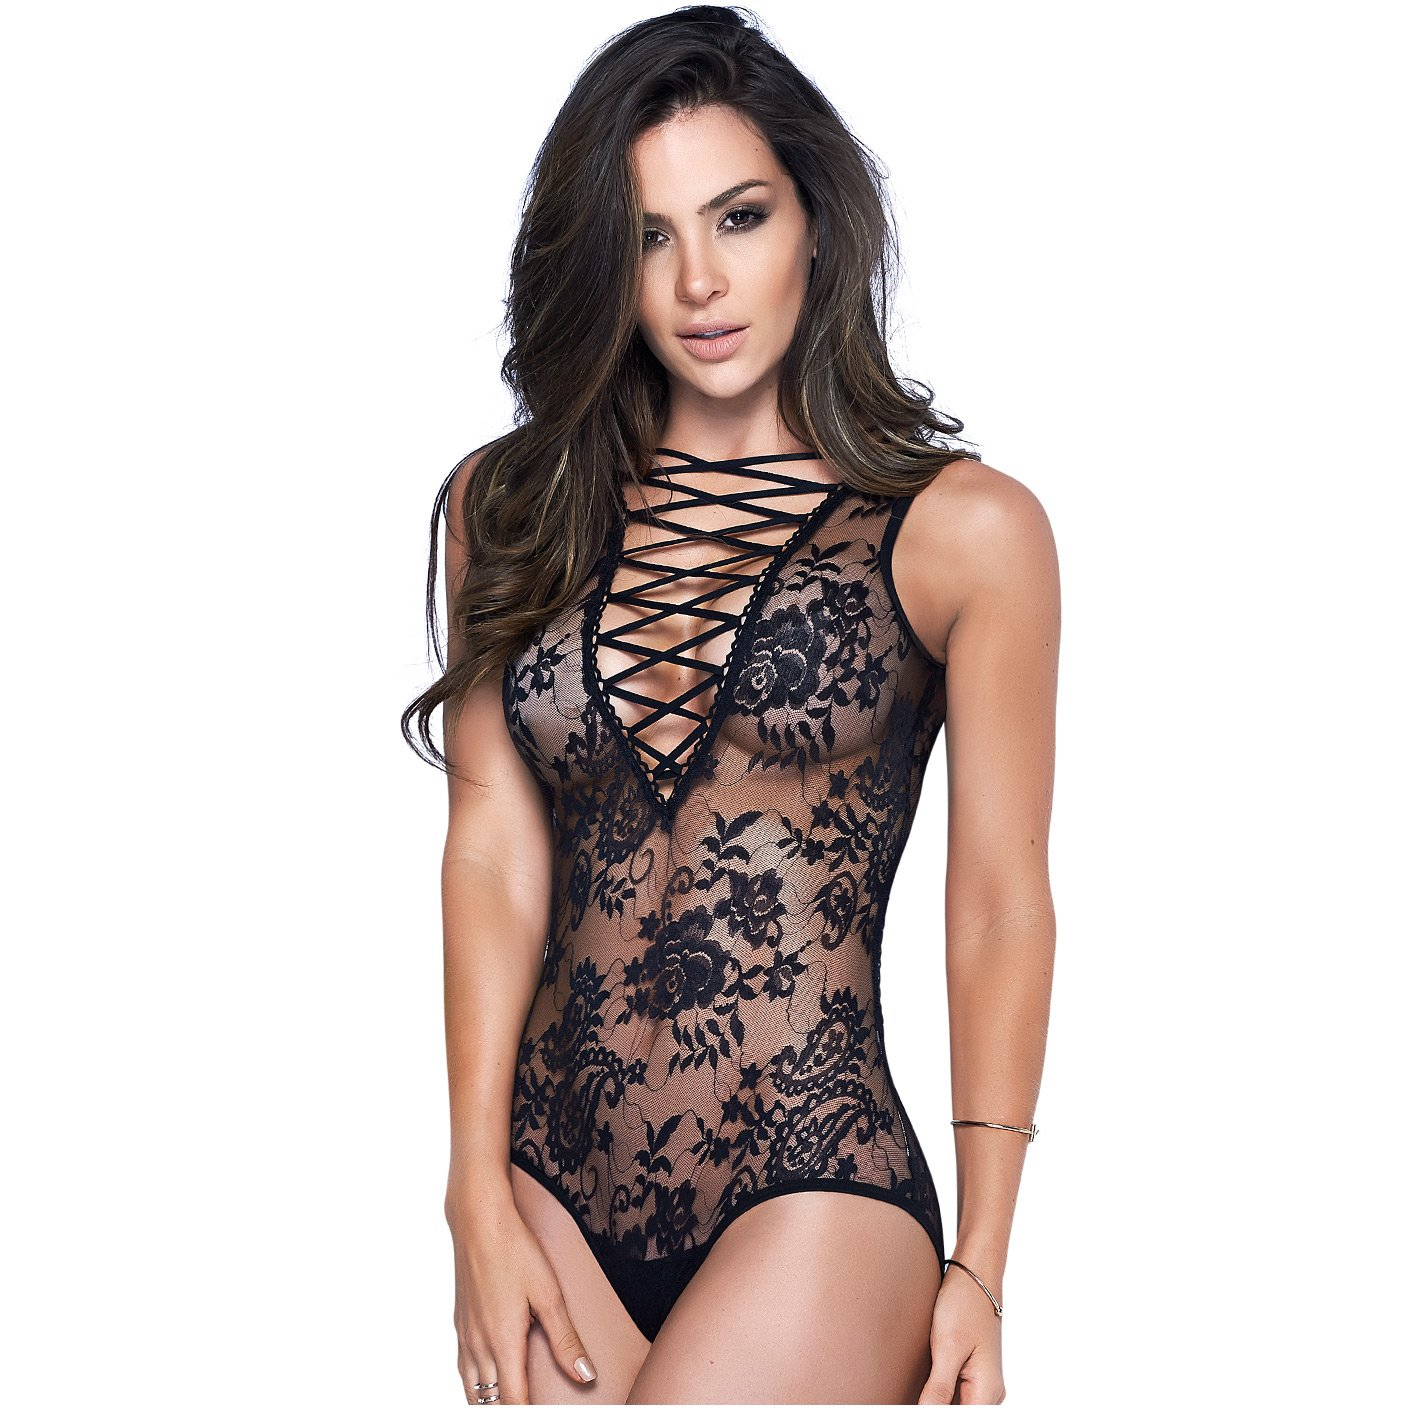 Mapalé Sexy Lingerie Strappy Lace up Teddy Bodysuit Women Ropa Interior Femenina at Amazon Womens Clothing store: